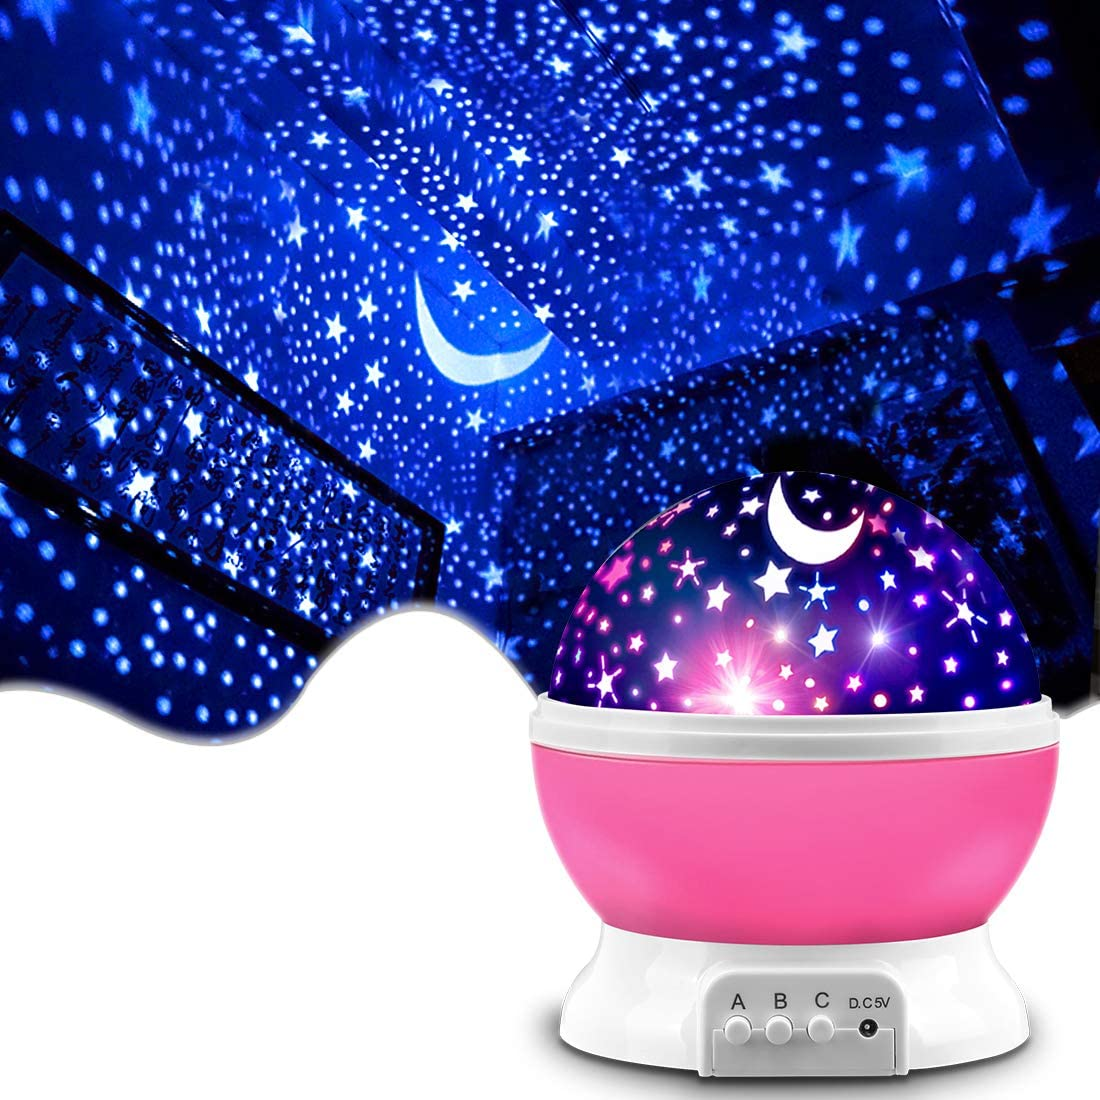 Star Projector, MOKOQI Night Light Lamp Fun Gifts for 1-4-6-14 Year Old Girls and Boys Rotating Star Sky Moon Light Projector for Kids Bedroom Decor (Pink): Home & Kitchen